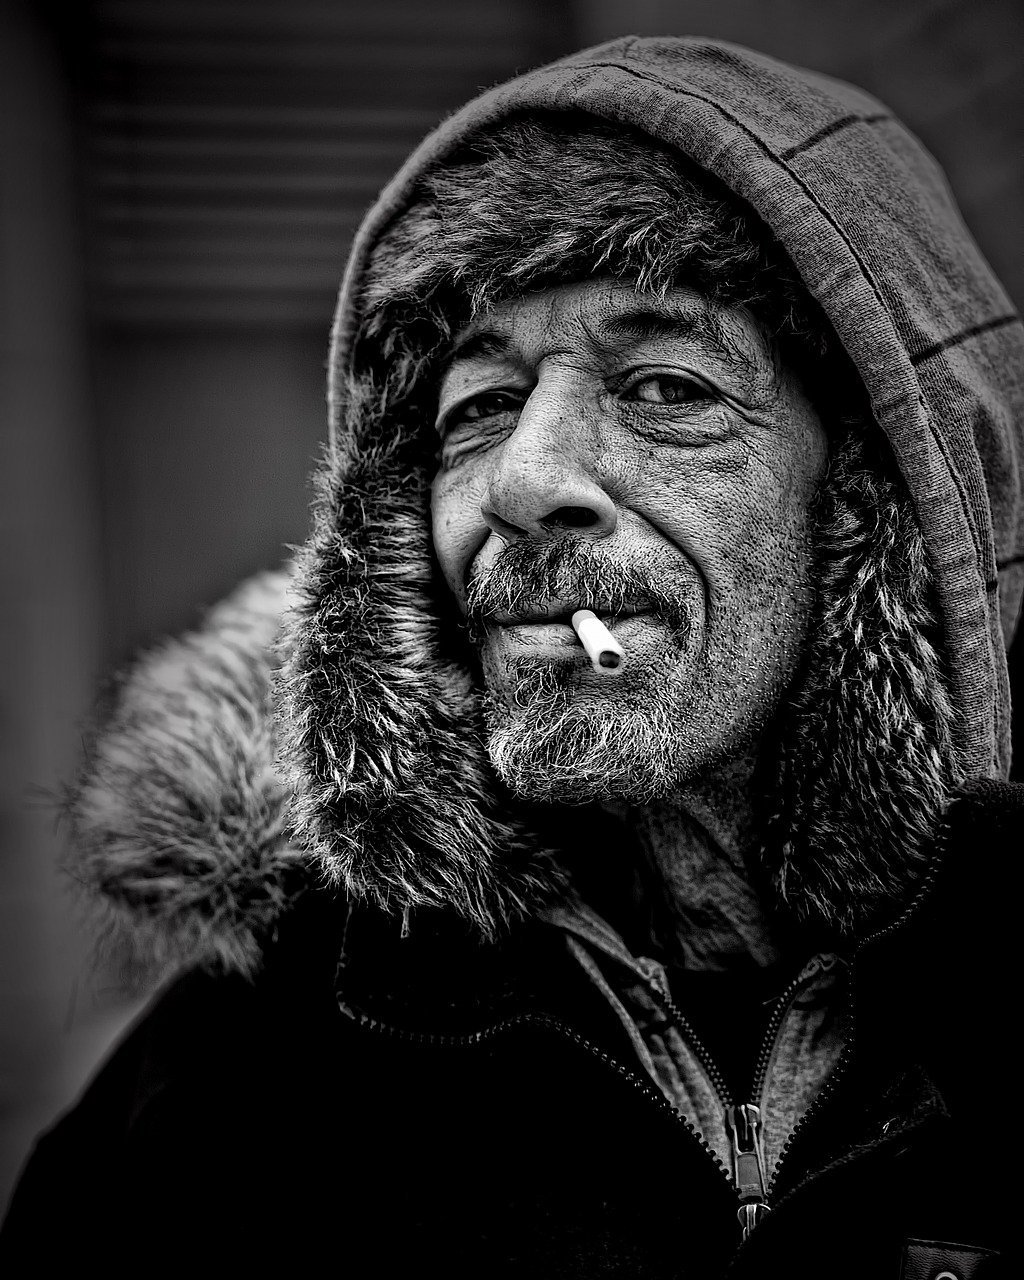 A black-and-white image of a man with a cigarette in his mouth | Photo: Pixabay/Leroy Skalstad